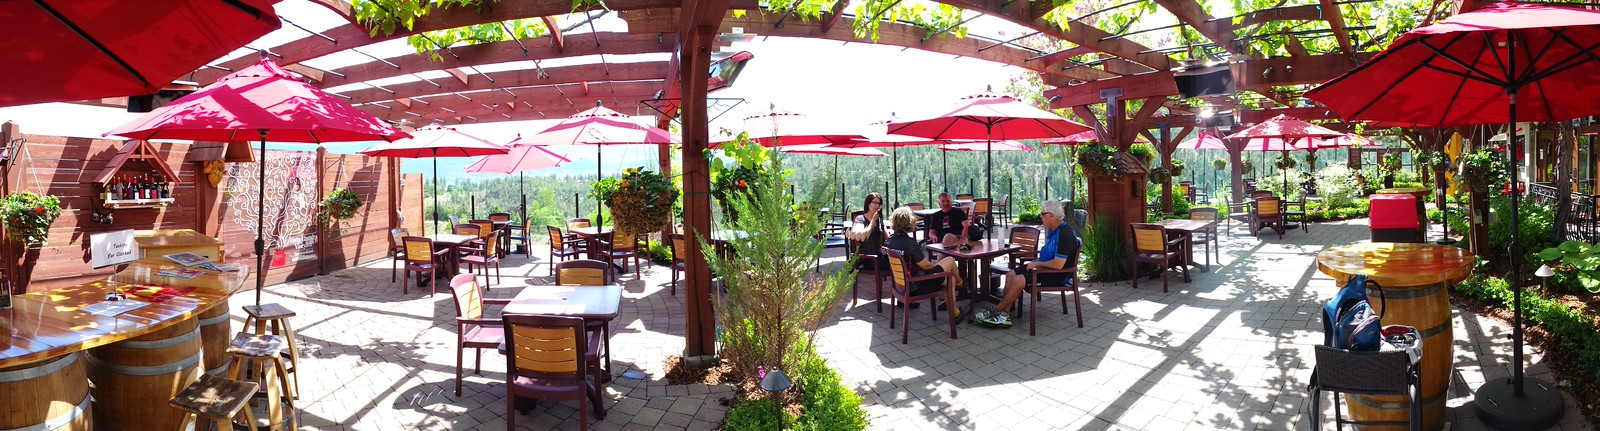 Dirty Laundry Winery's Patio   In Summerland